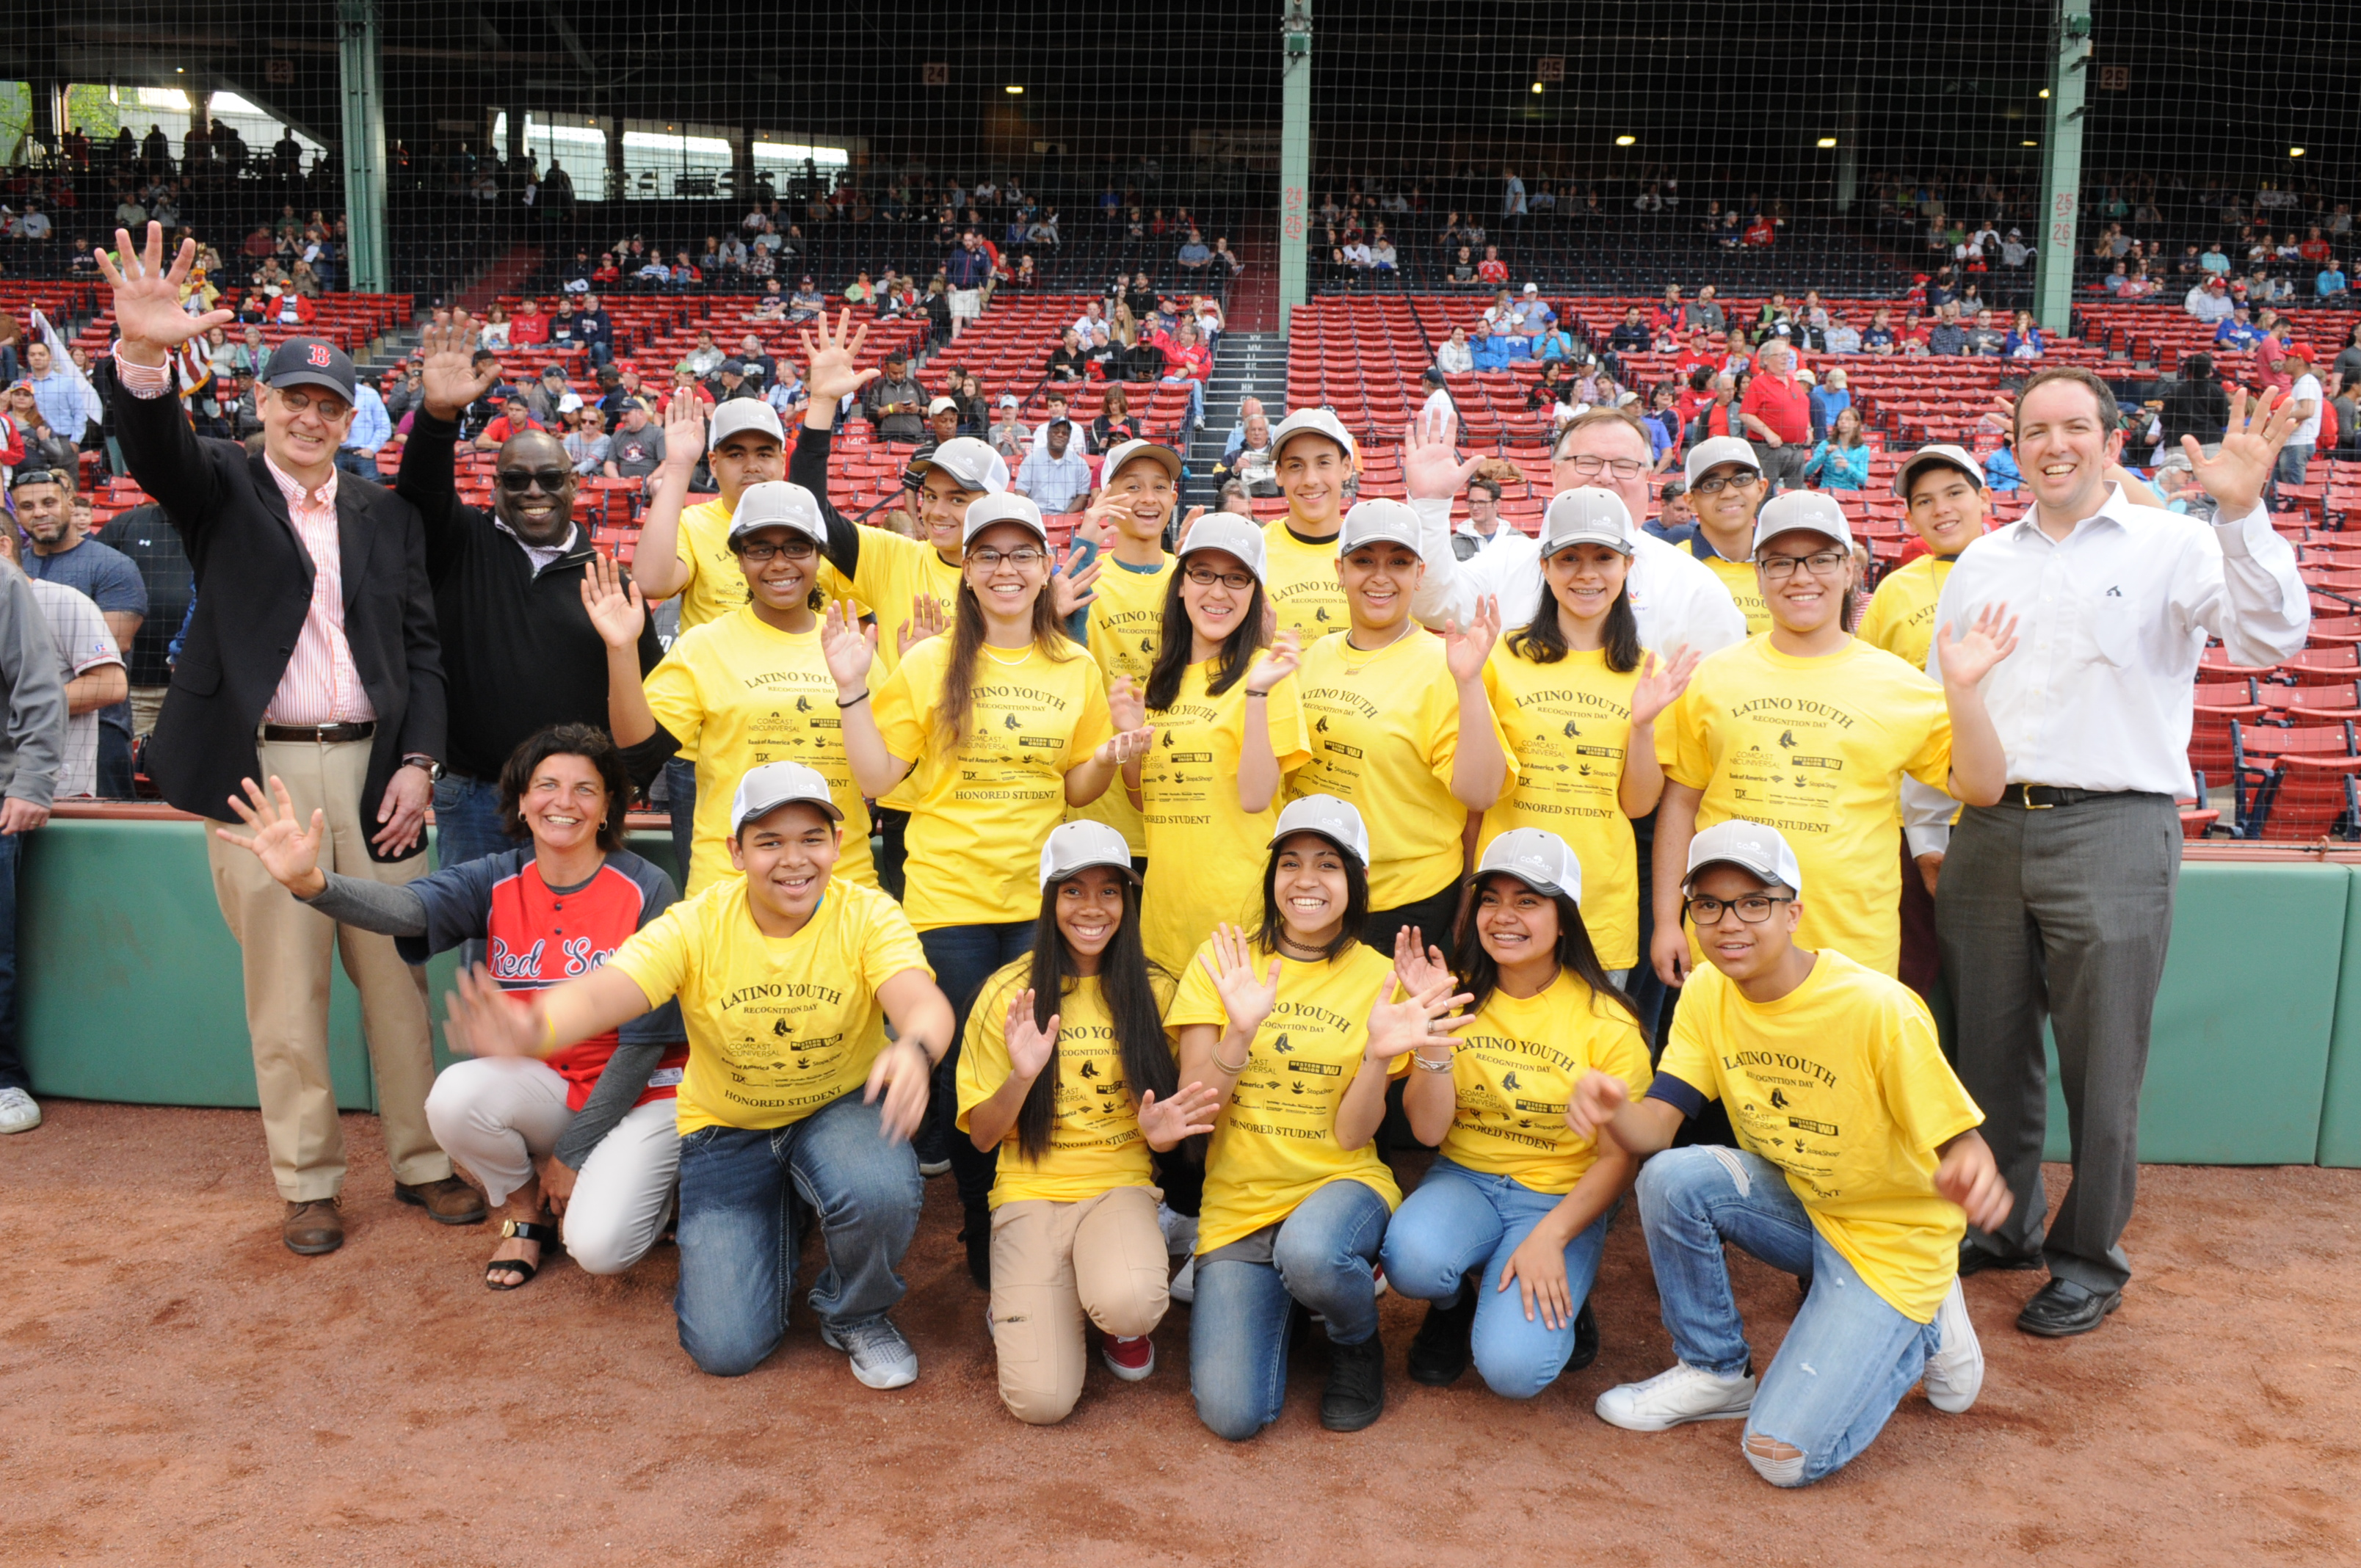 Latino students honored by Red Sox, El Mundo Boston and